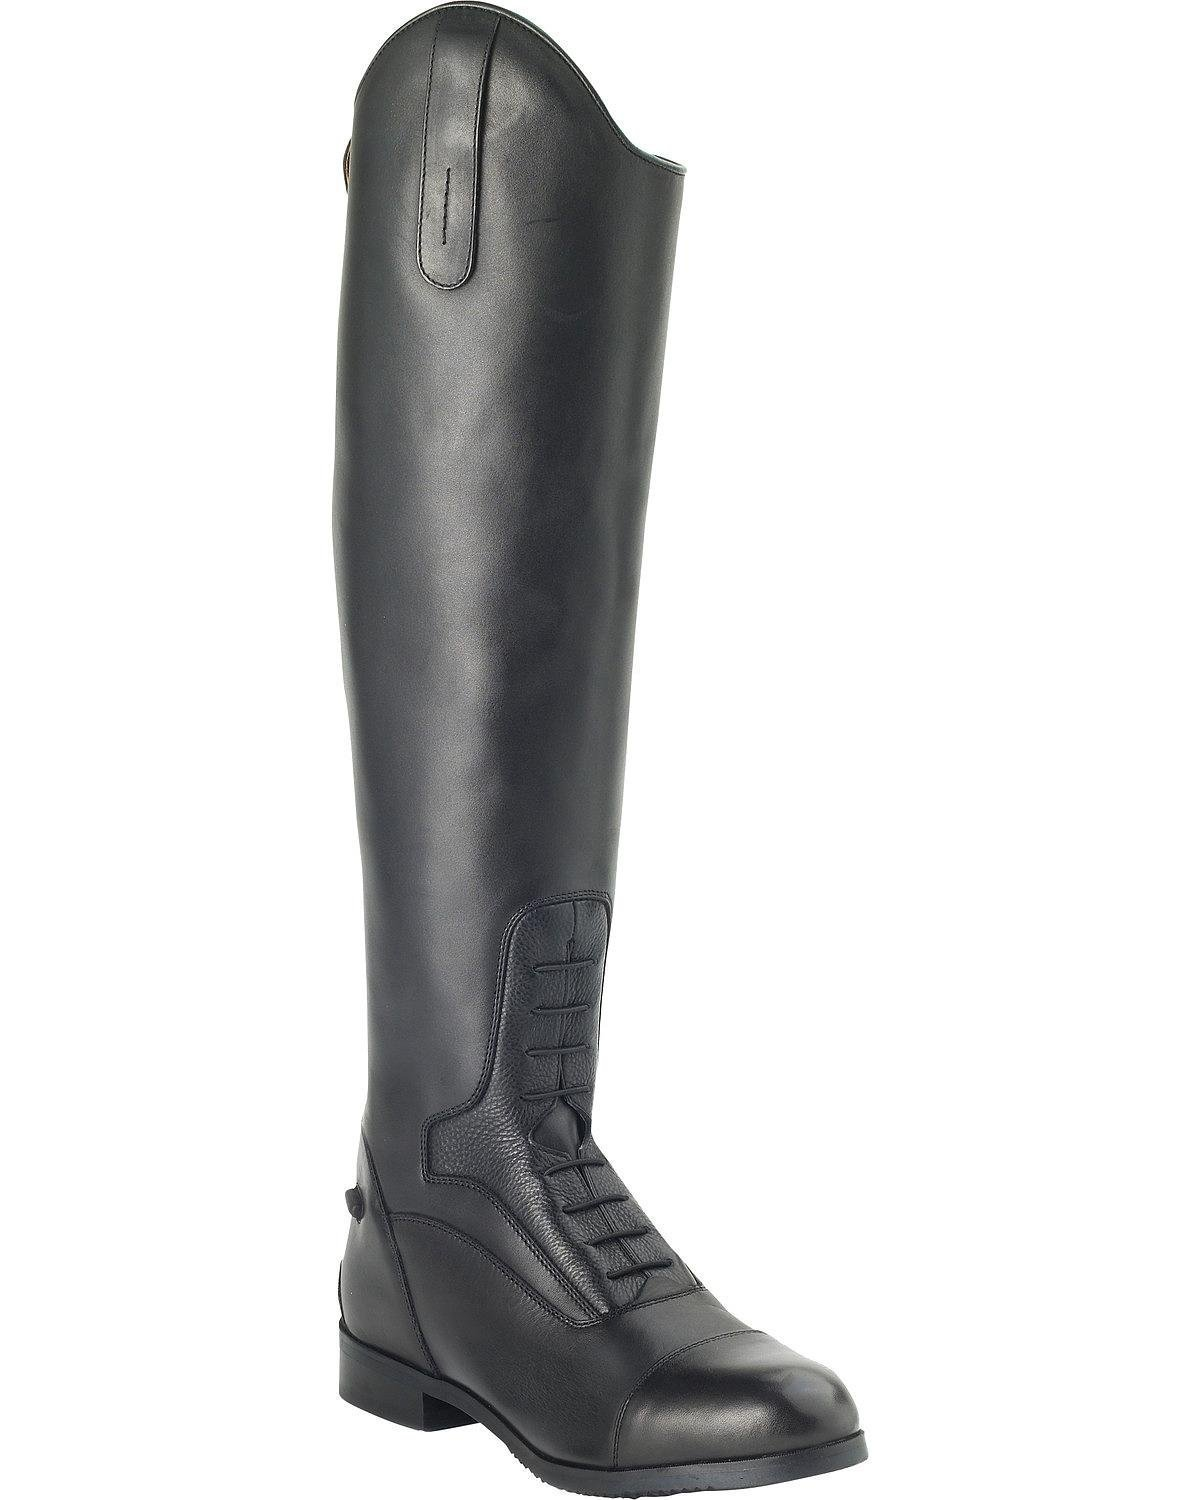 Ovation Flex Sport Ladies Field Boot B00HYV2L78 10 B(M) US|X-wide